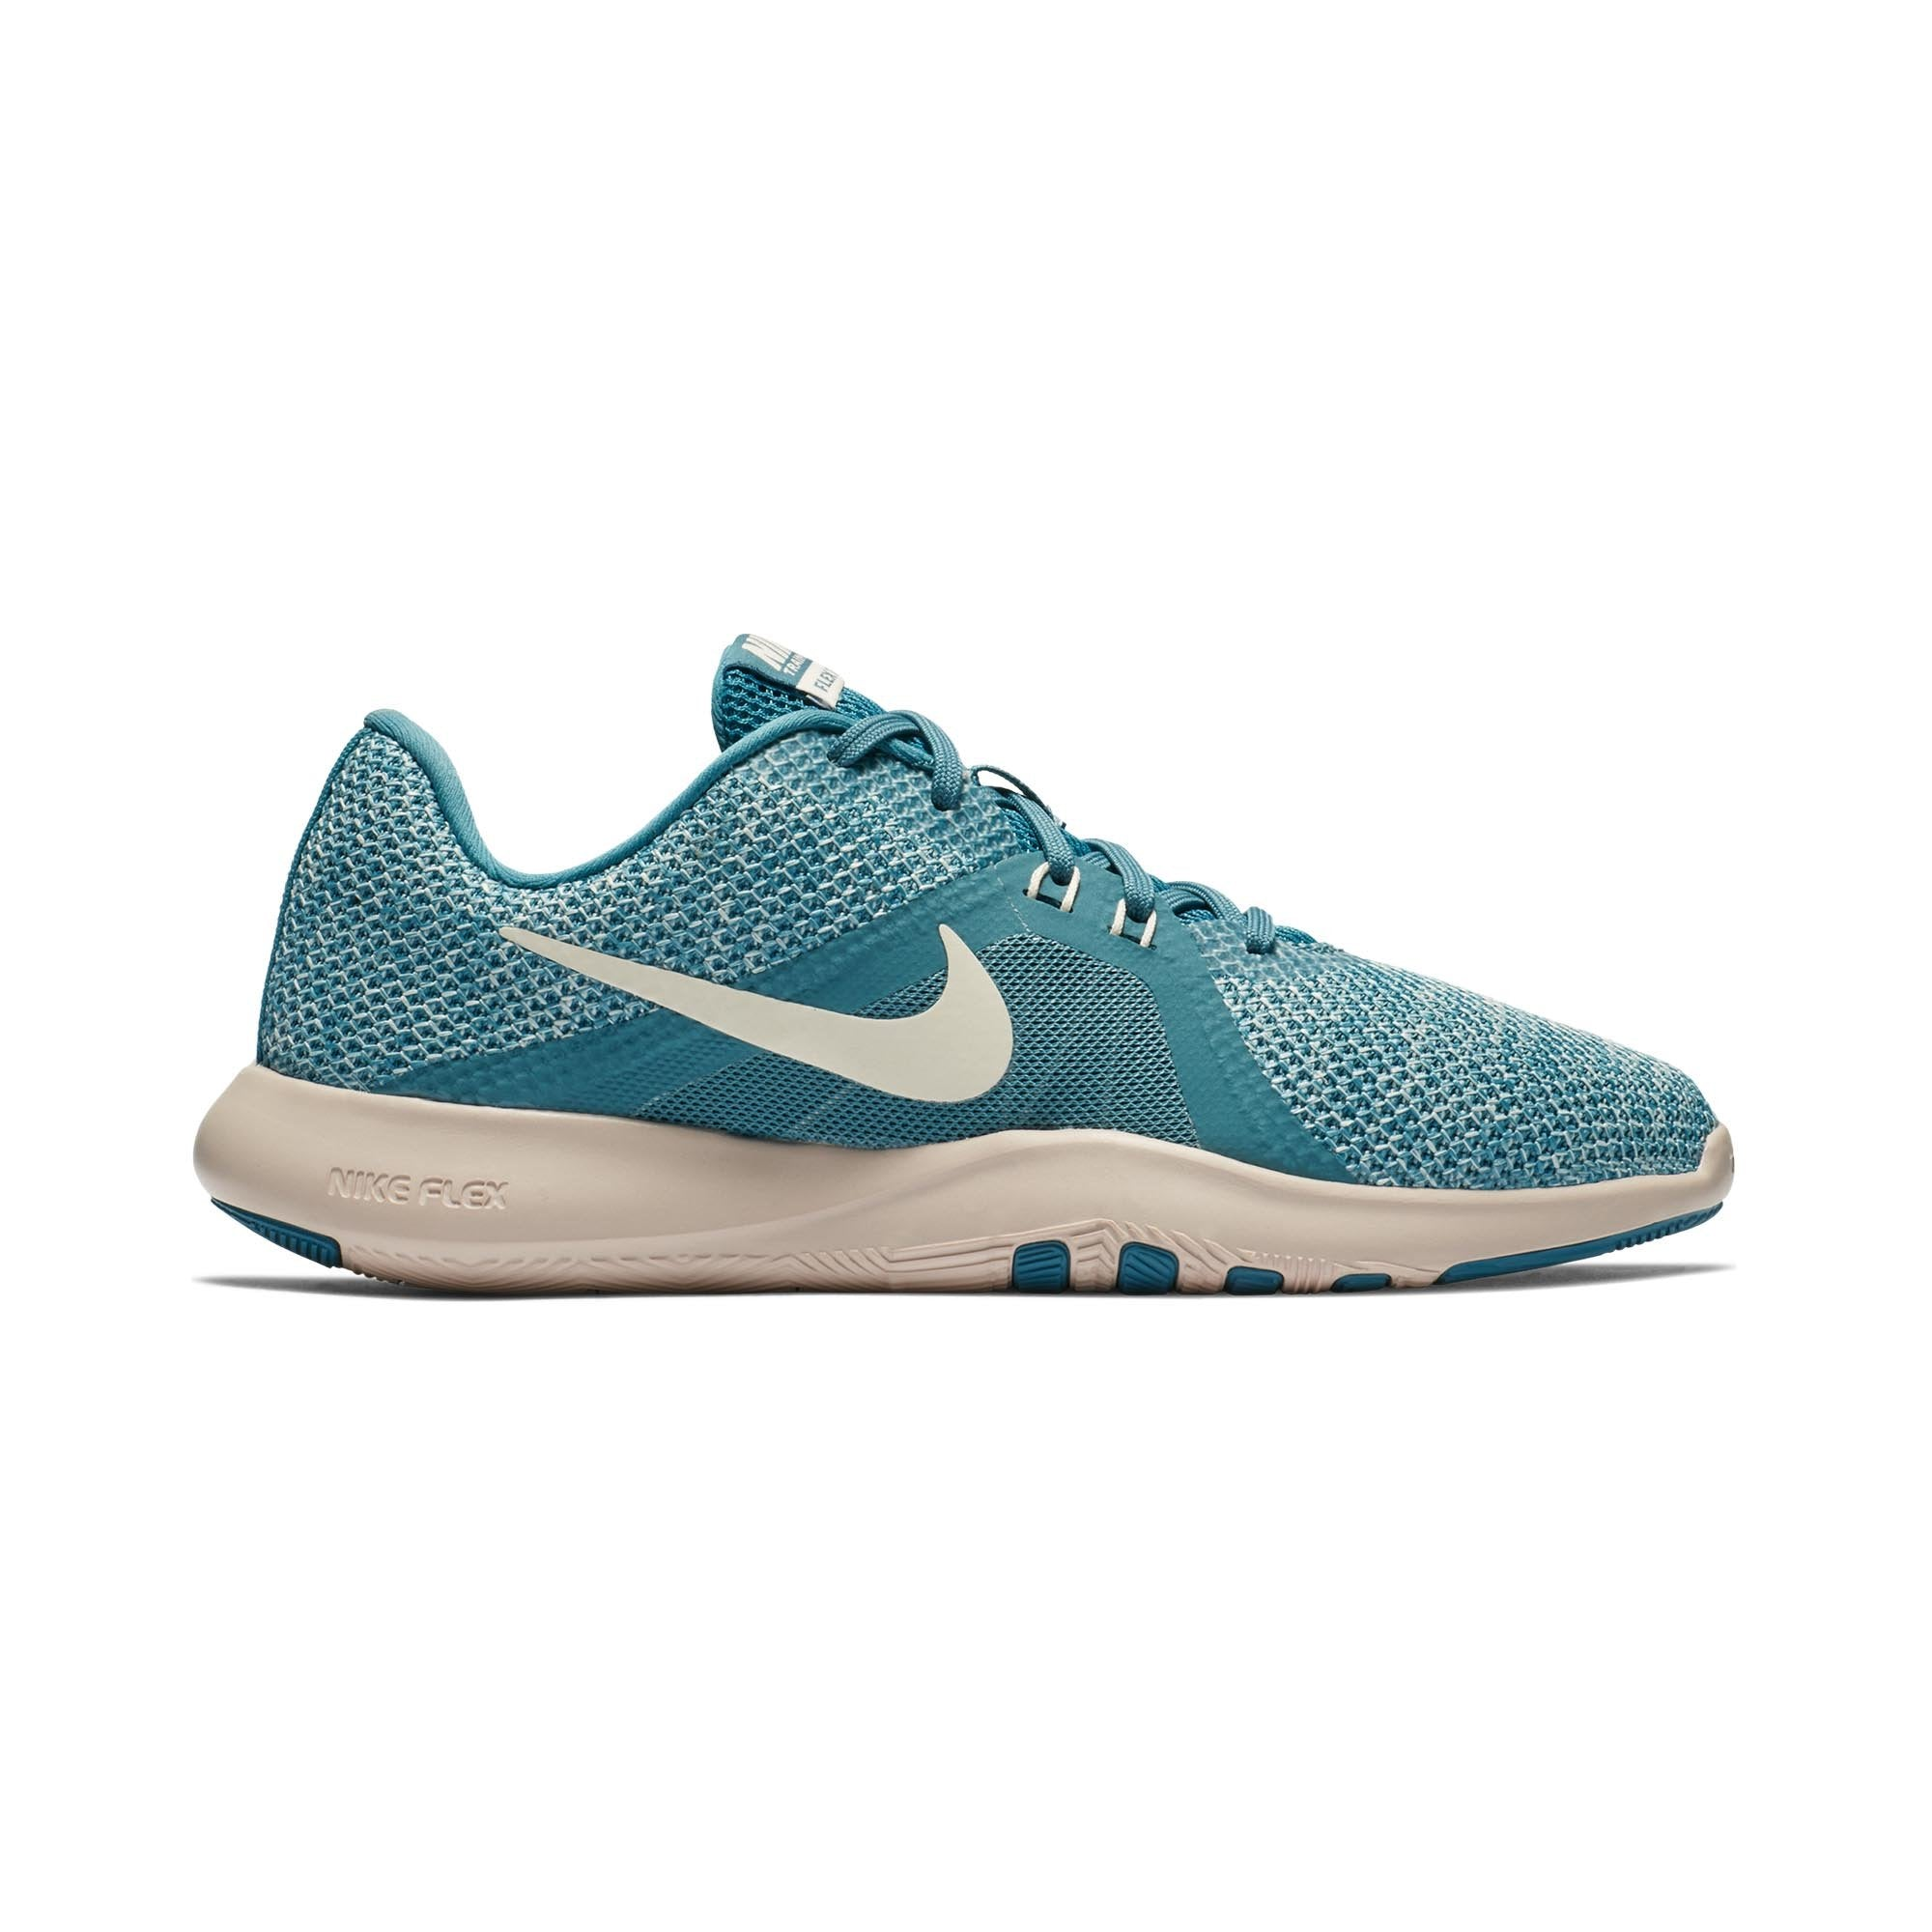 6c17884cc8e8a Buy NIKE Women Flex Tr 8 Training Shoes